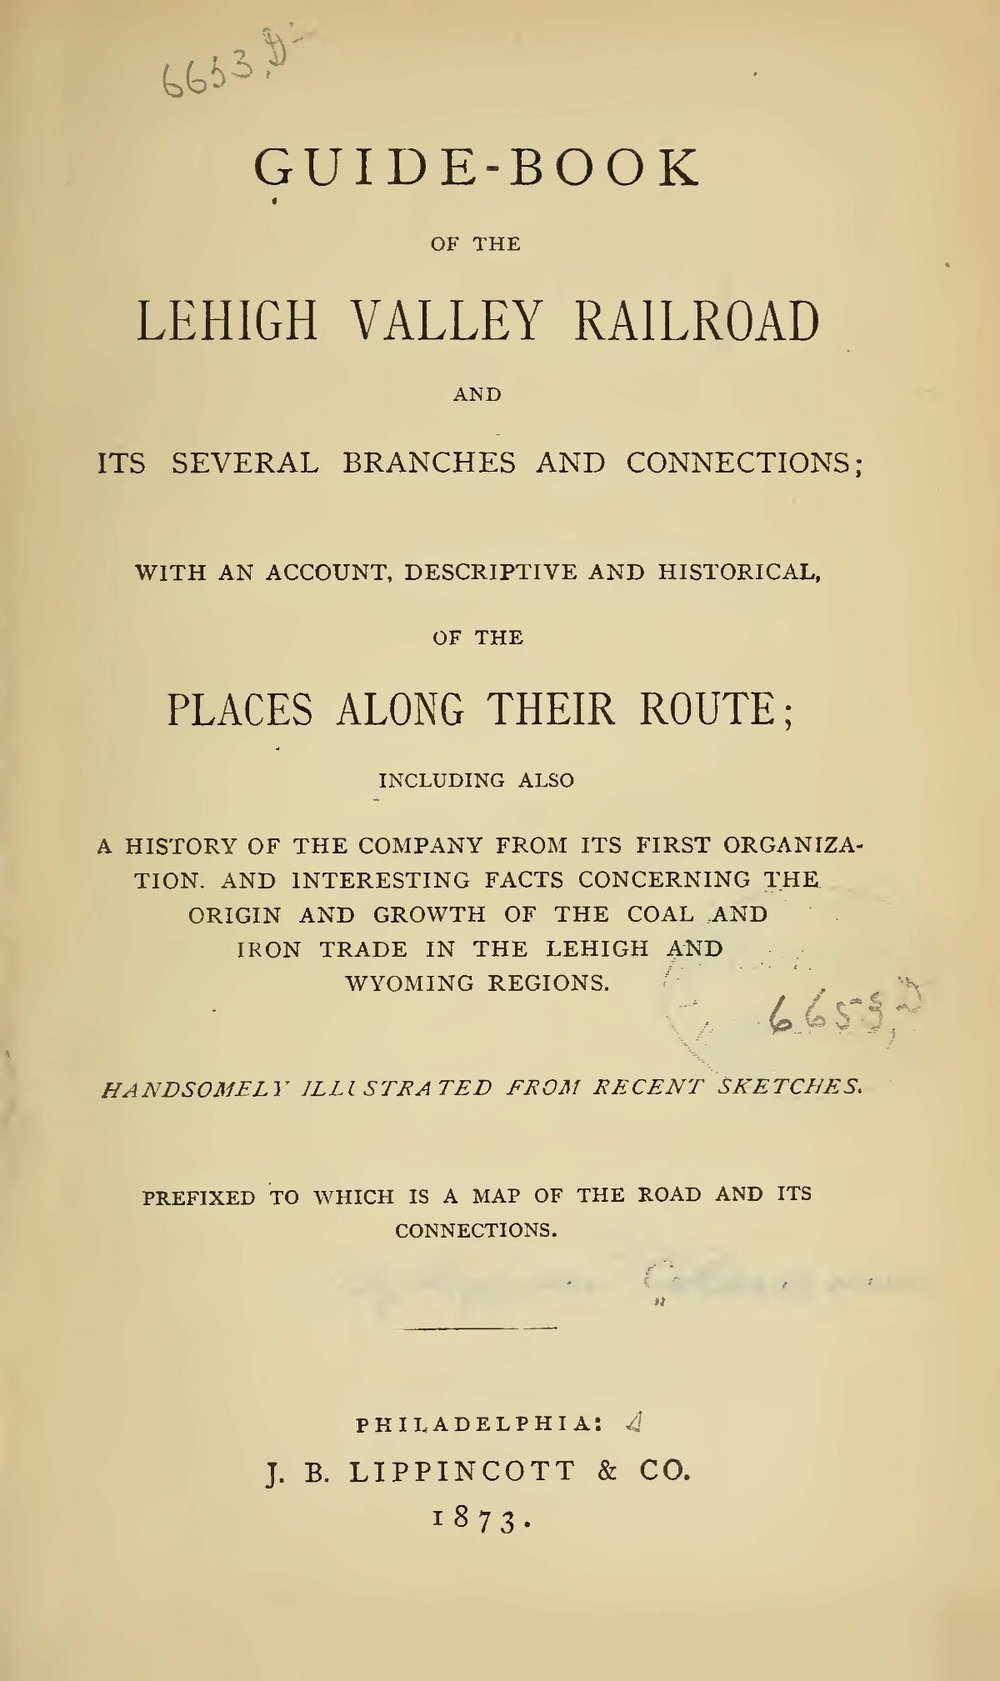 Coleman, Lyman, Guide-Book of the Lehigh Valley Railroad Title Page.jpg